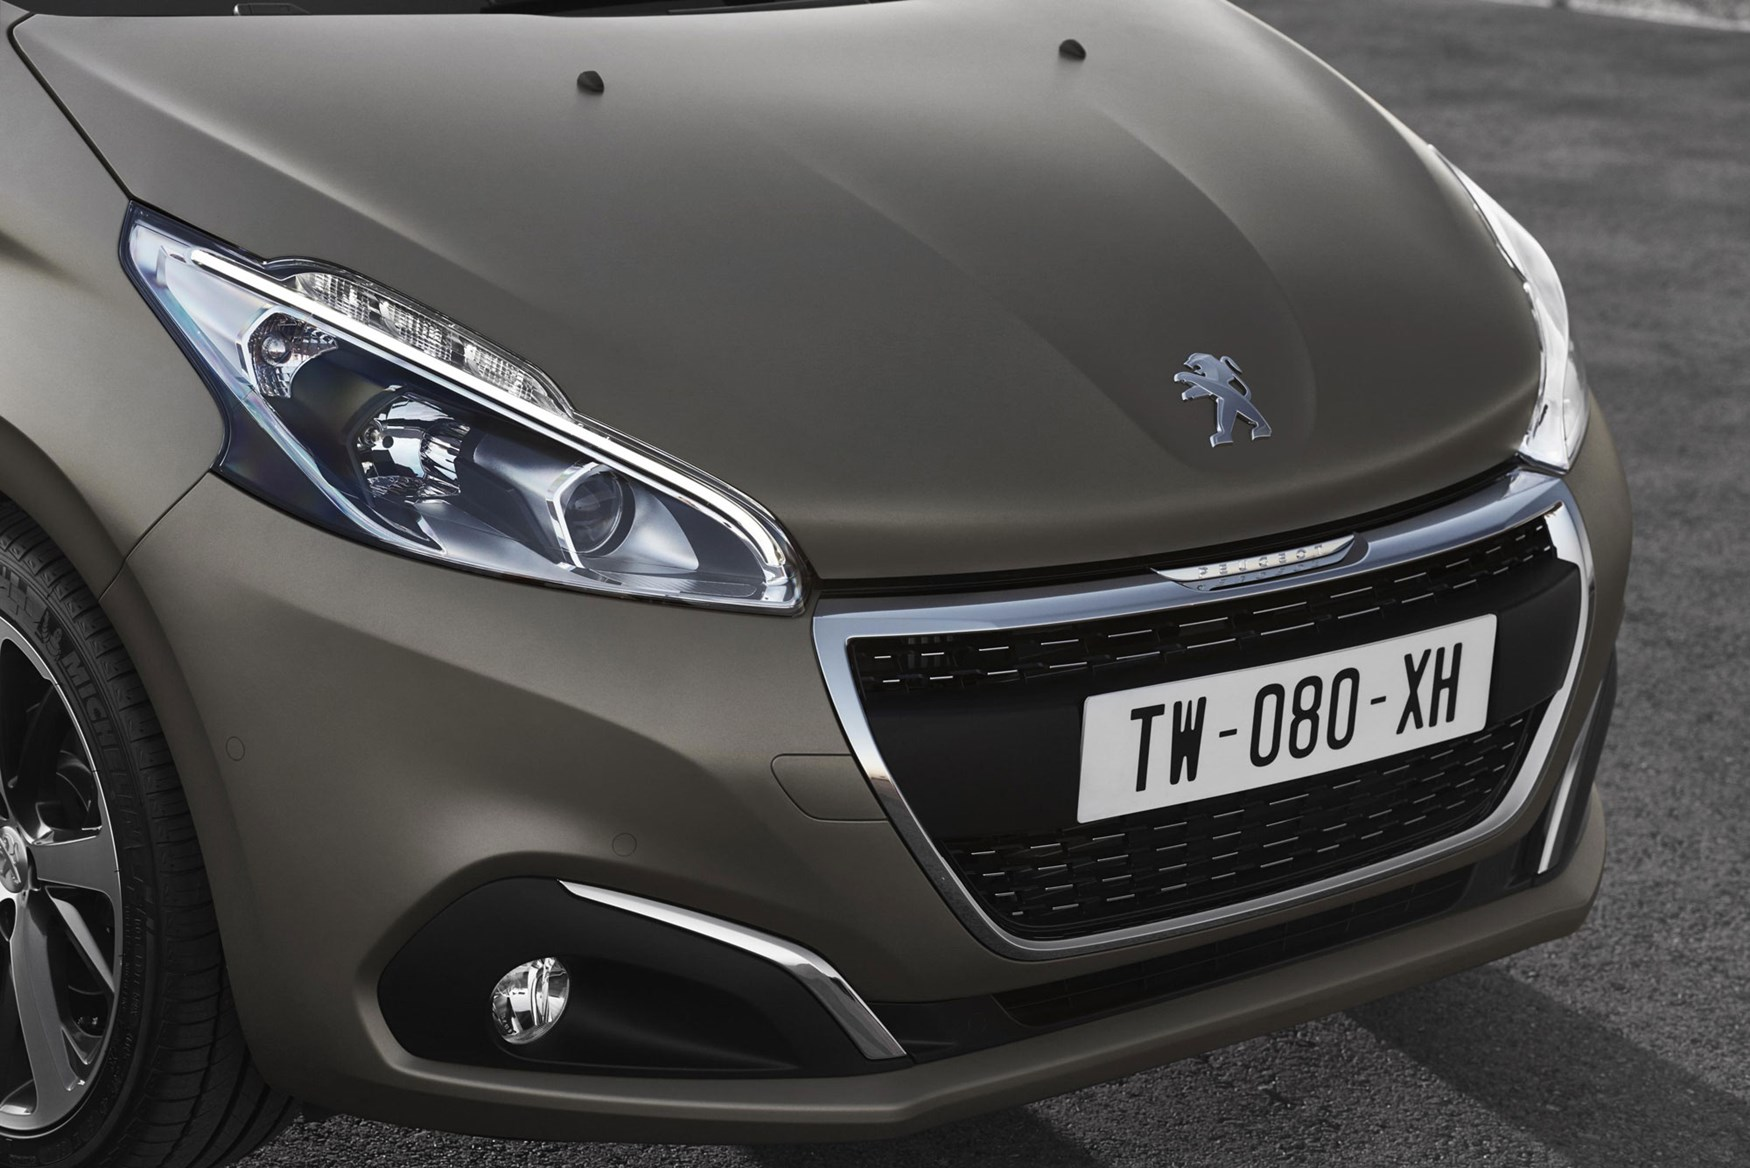 peugeot gets touchy feely with new textured paint car. Black Bedroom Furniture Sets. Home Design Ideas